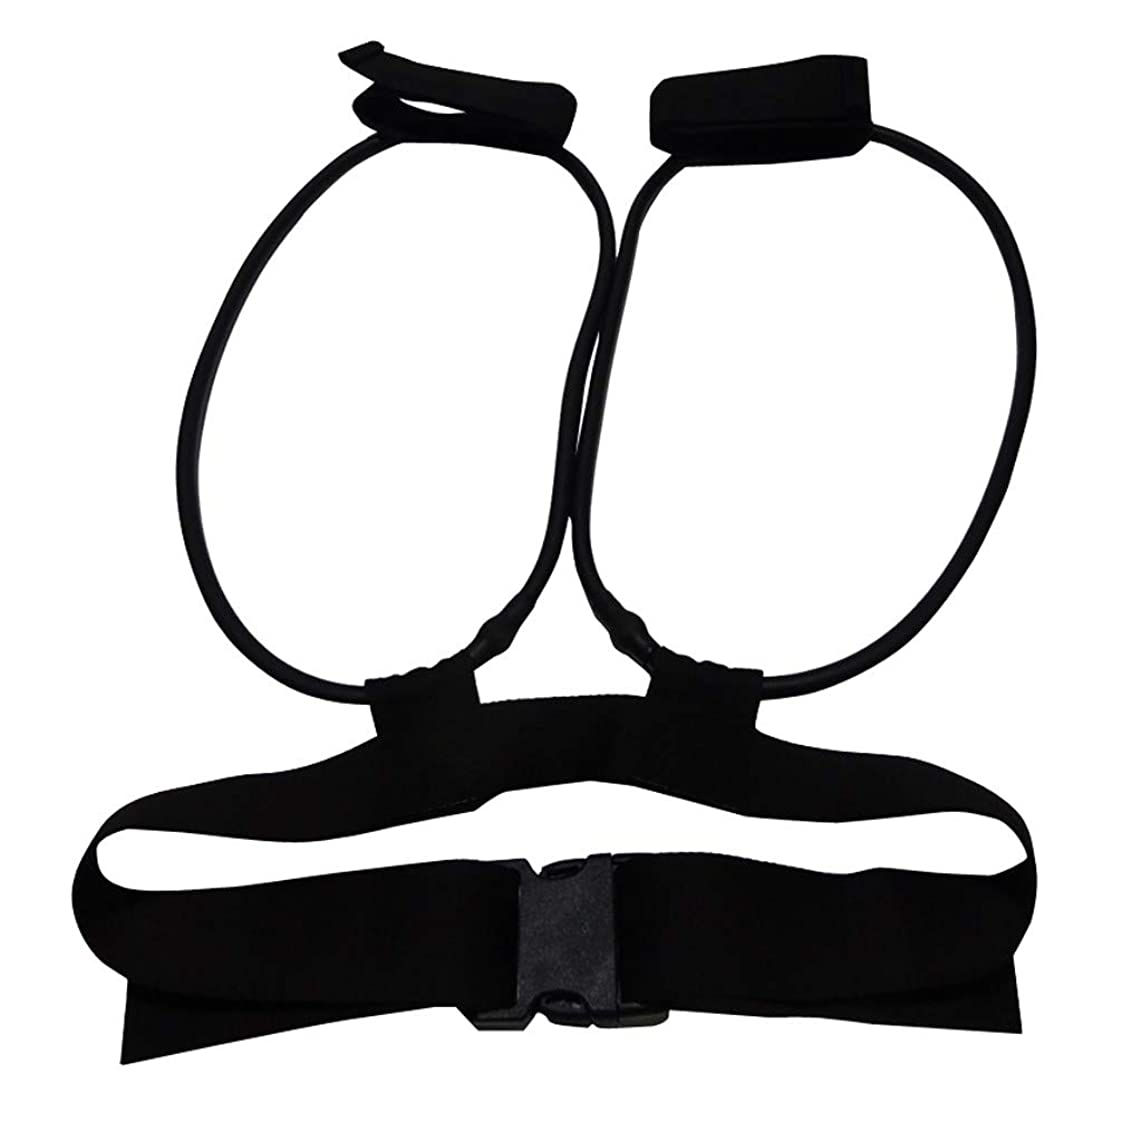 Yoga Pull Band Resistance Belt, Workout Flexbands for Physical Therapy, Rehab, Stretching, Home Fitness Leg Strength Training Muscle etc